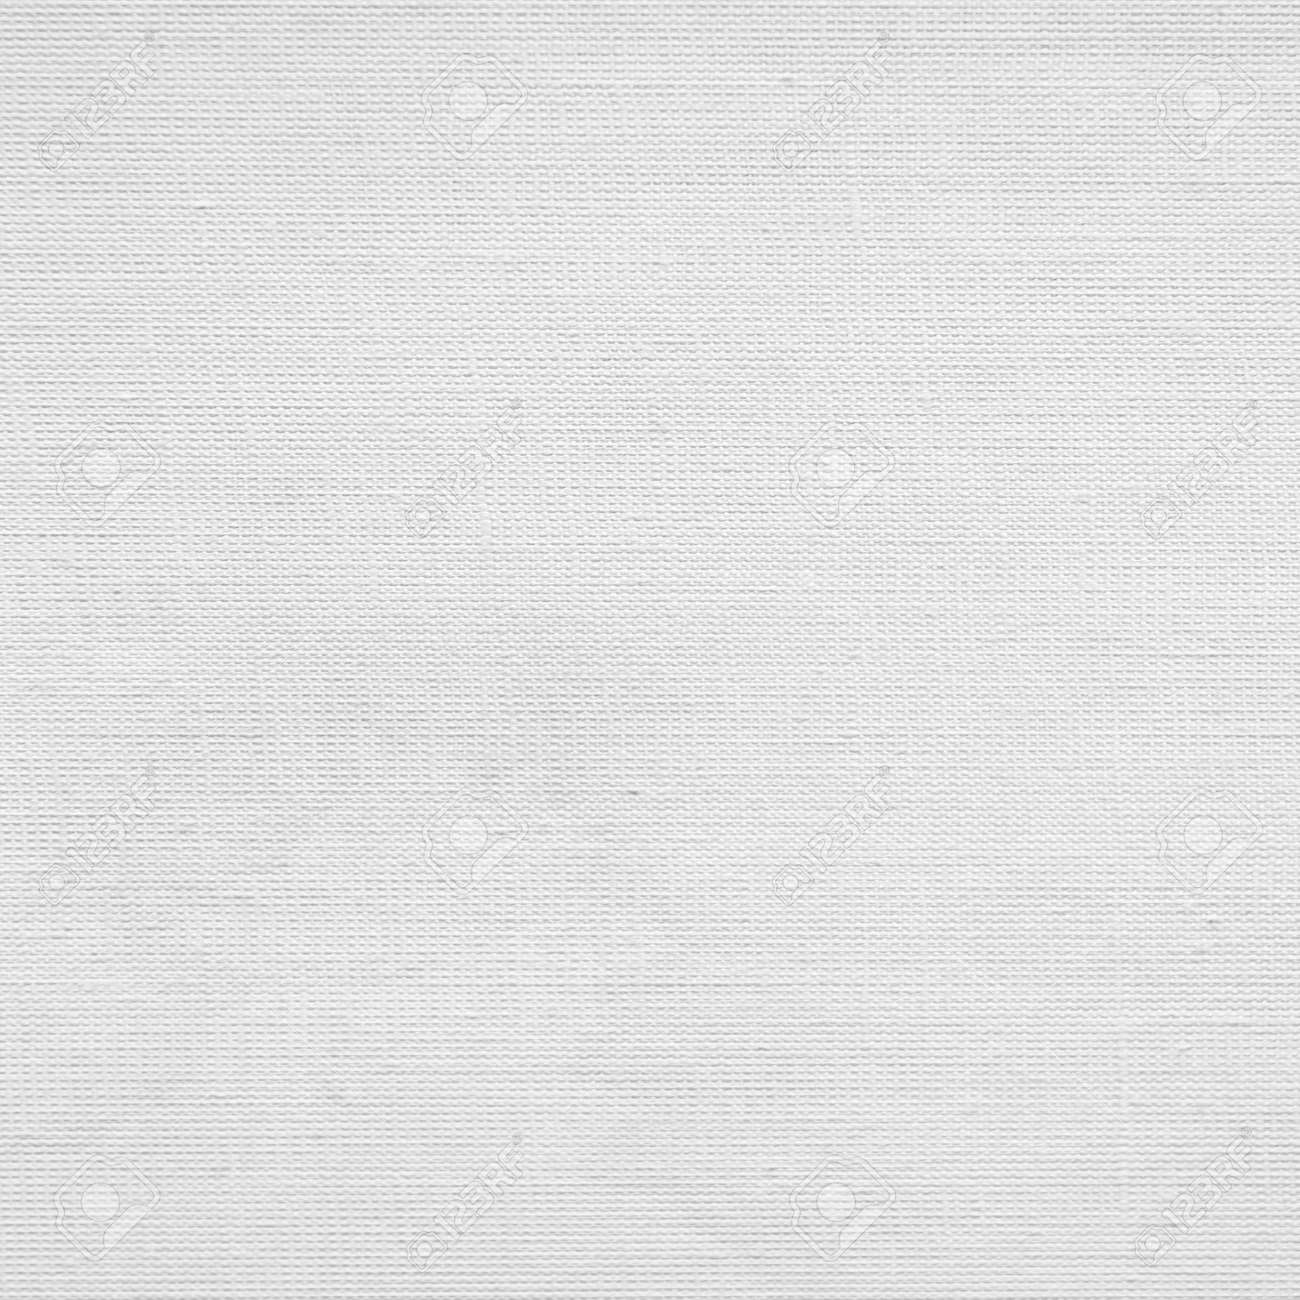 white paper background canvas texture pattern stock photo picture